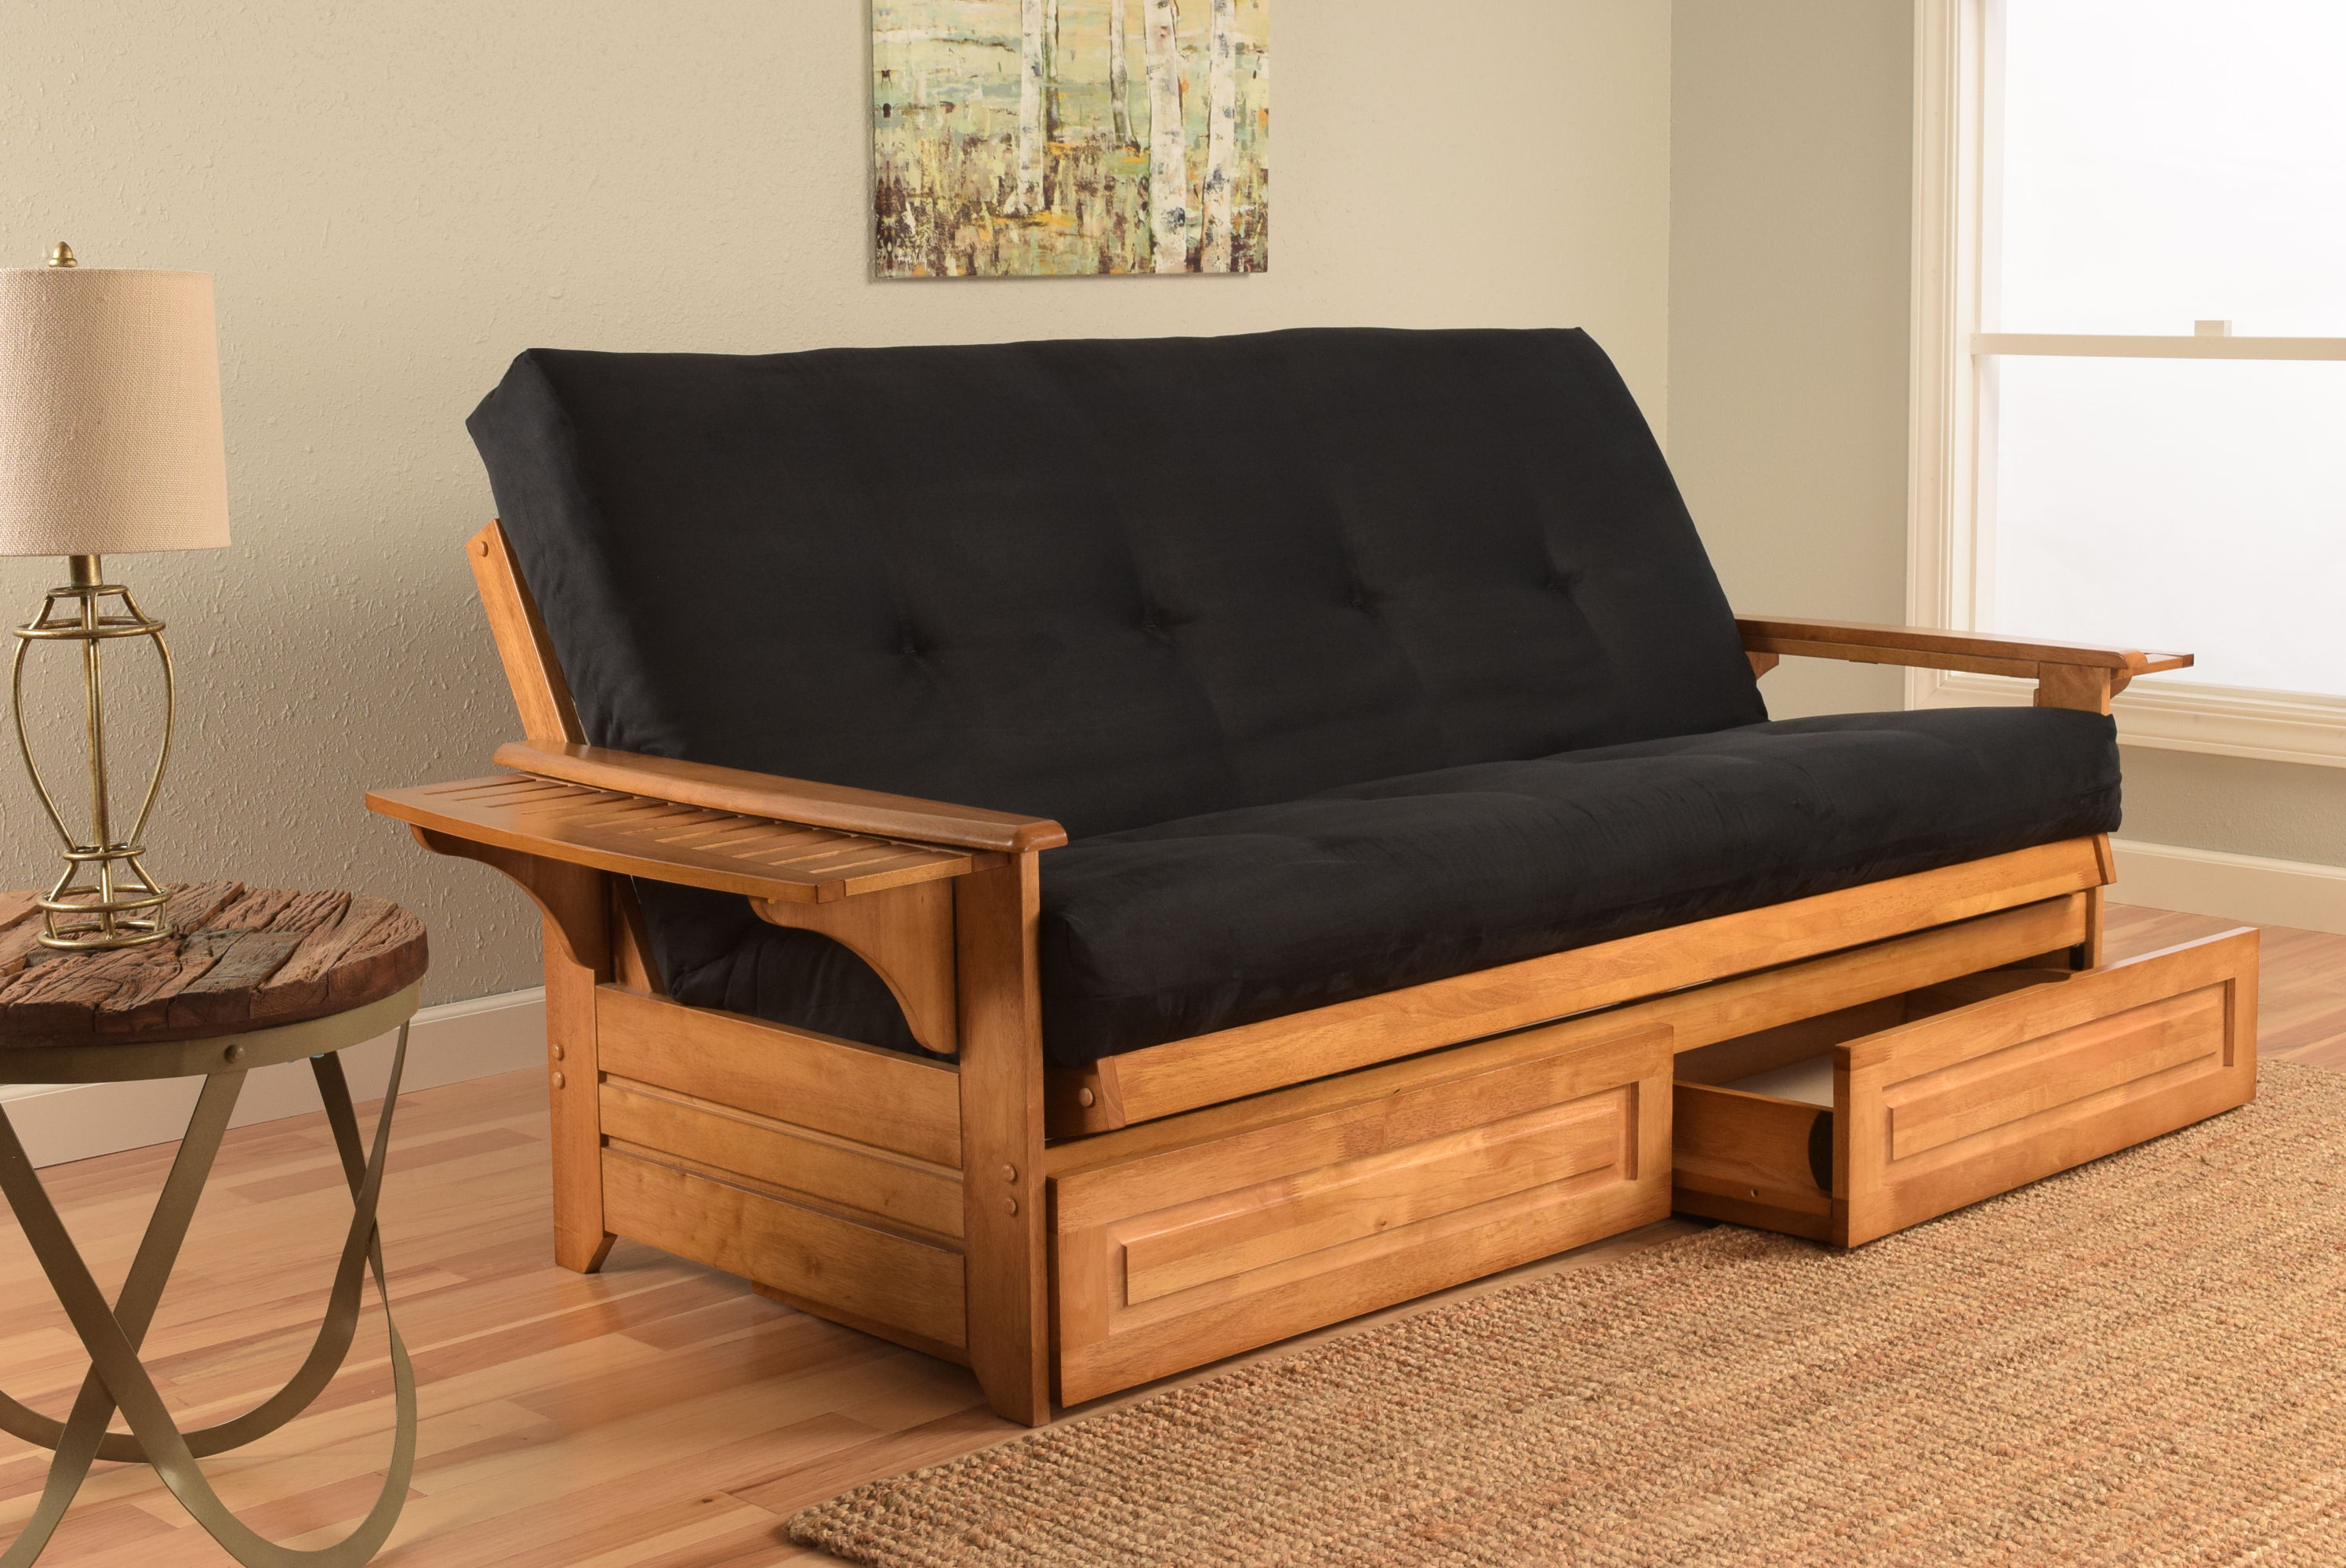 Kodiak Furniture Phoenix Ernut Frame Black Suede Mattress Futon With Drawer